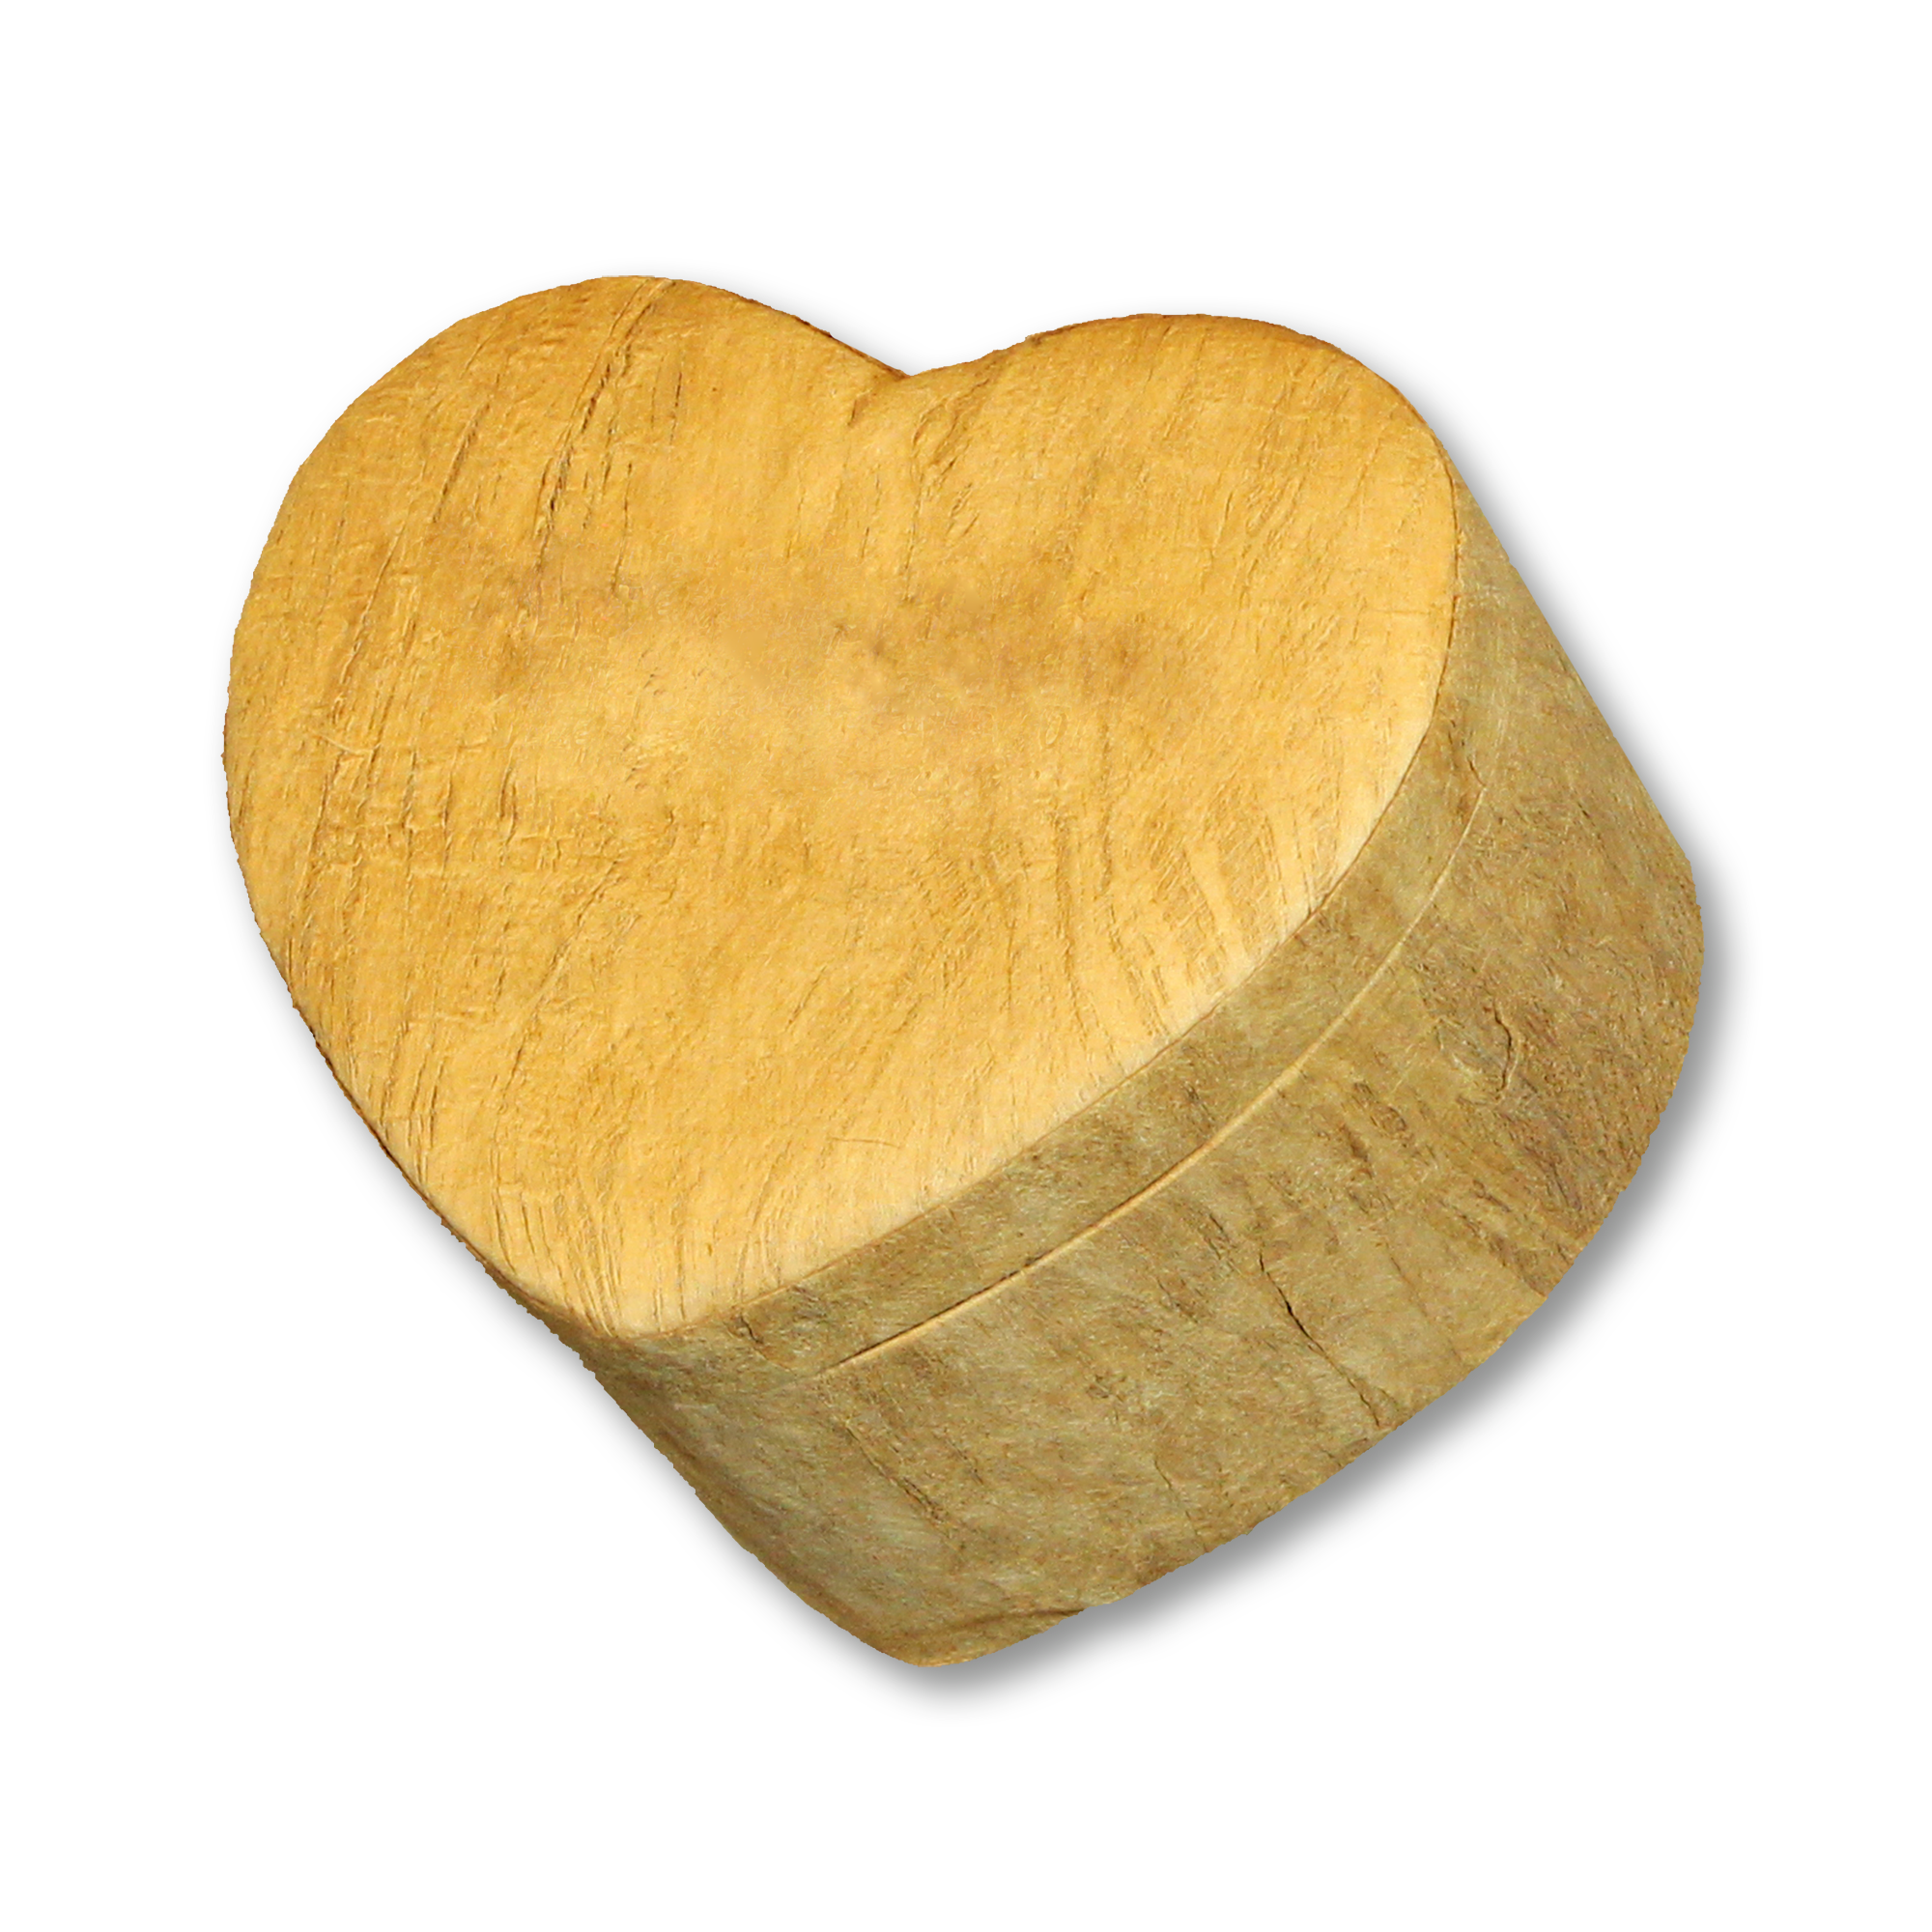 Unity-Earthurn-Woodgrain-Adult-2000x2000-Clear.png